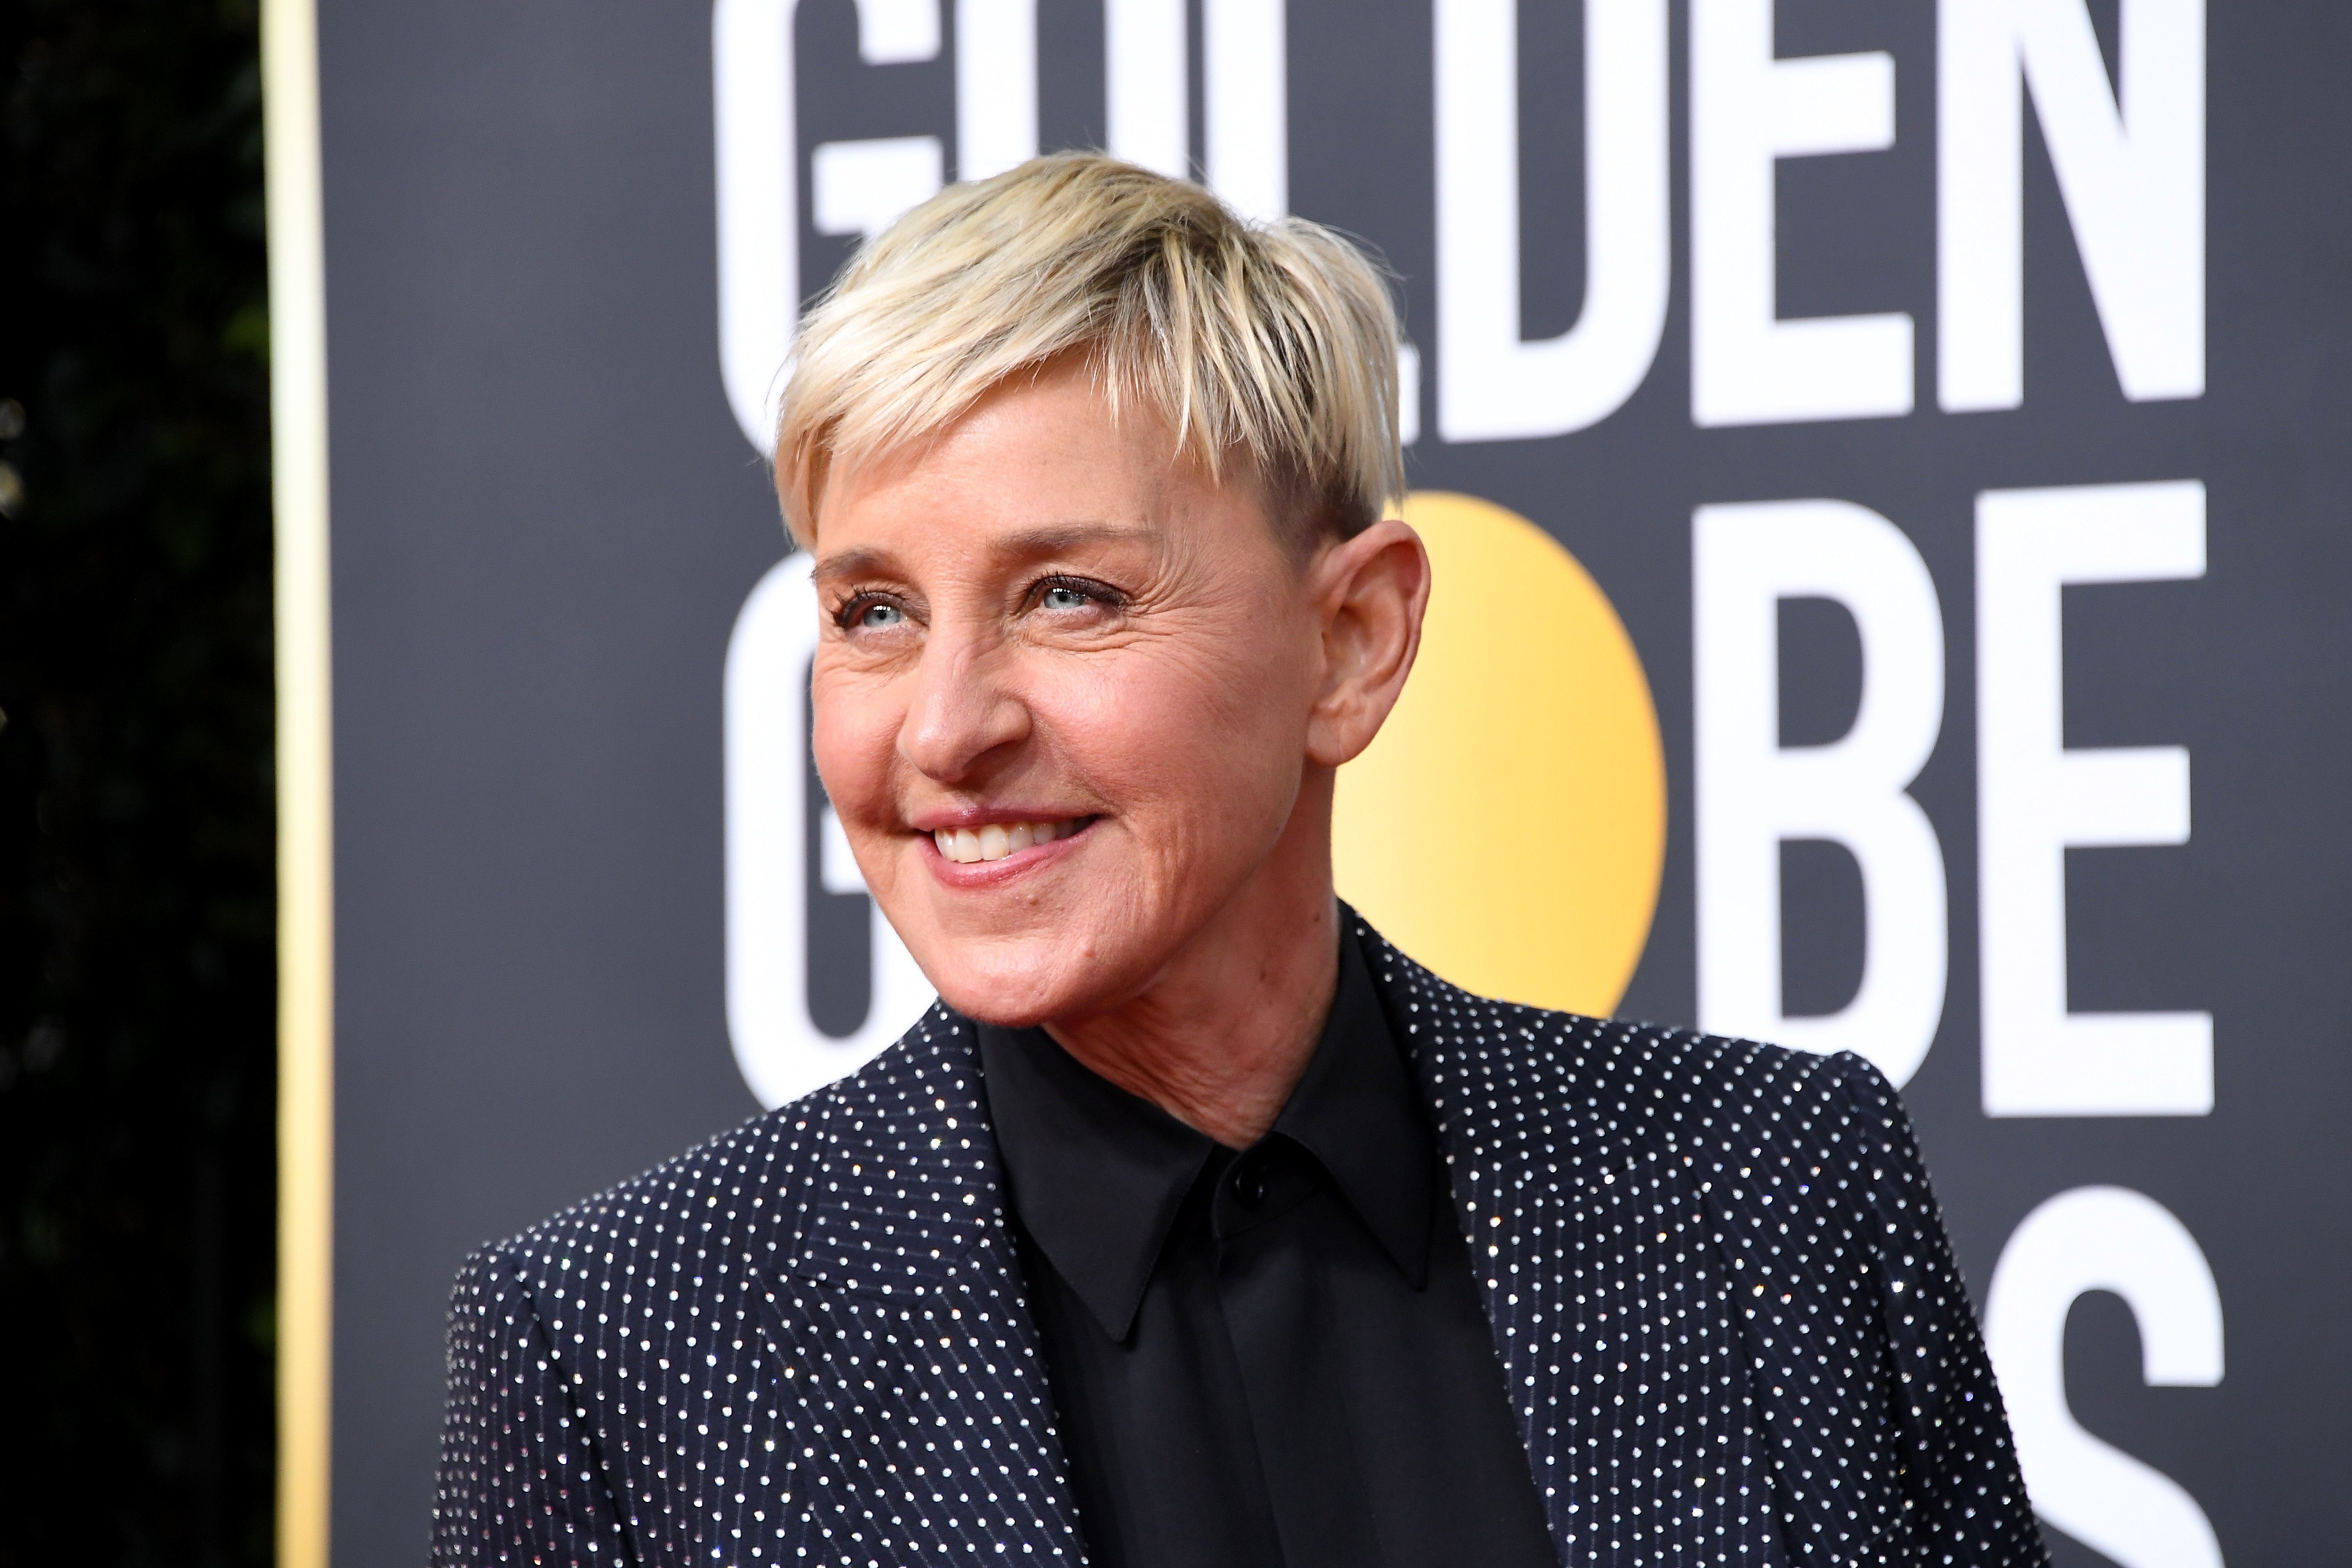 Ellen DeGeneres attends the 77th Annual Golden Globe Awards on January 05, 2020. | Photo: Getty Images